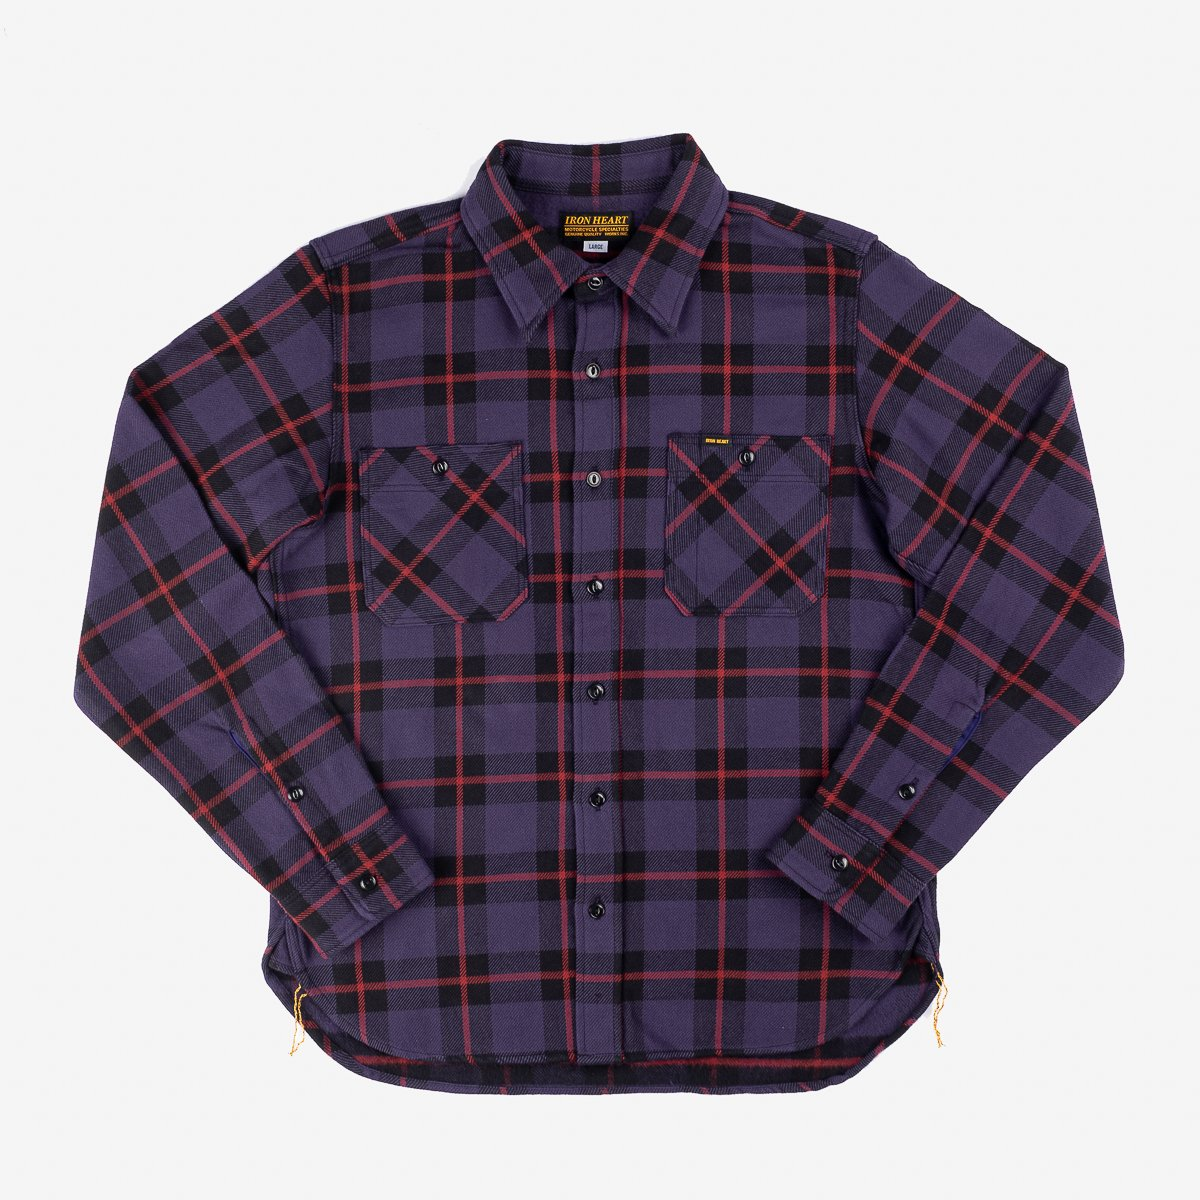 IHSH-269-PPL | Iron Heart Japanese Ultra Heavy Flannel ...